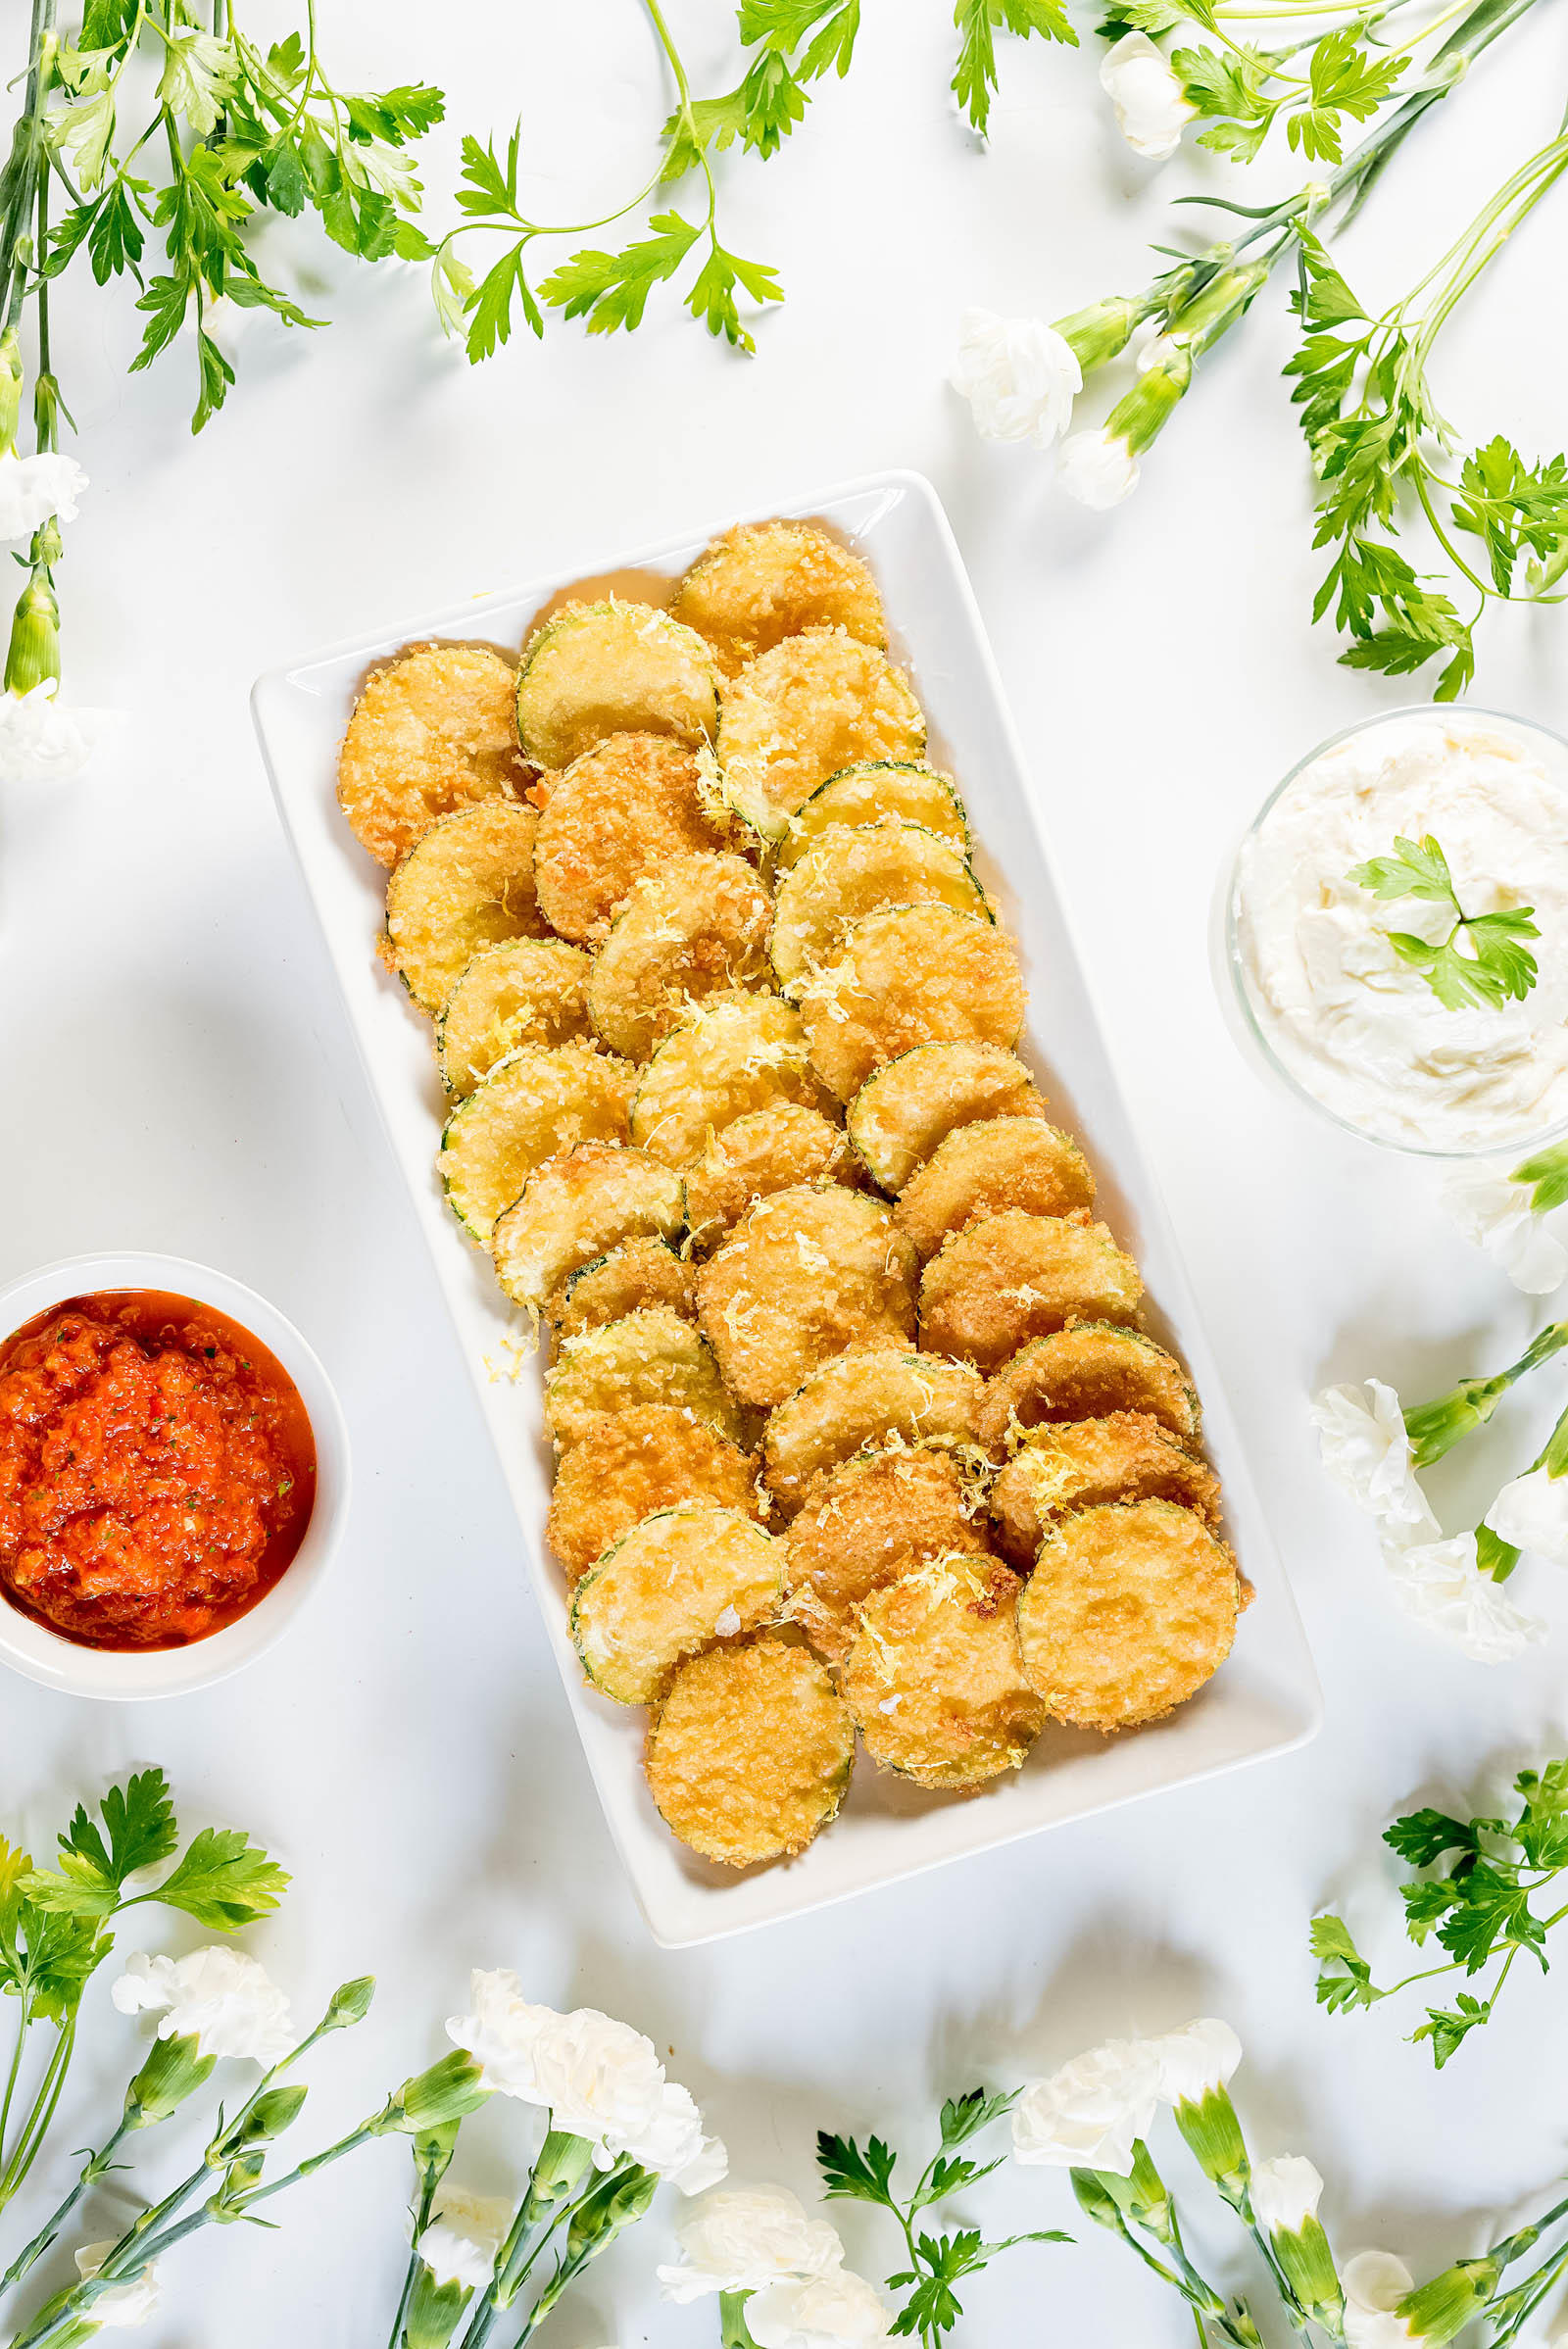 Fried Zucchini Chip Recipe Roasted Red Pepper Relish